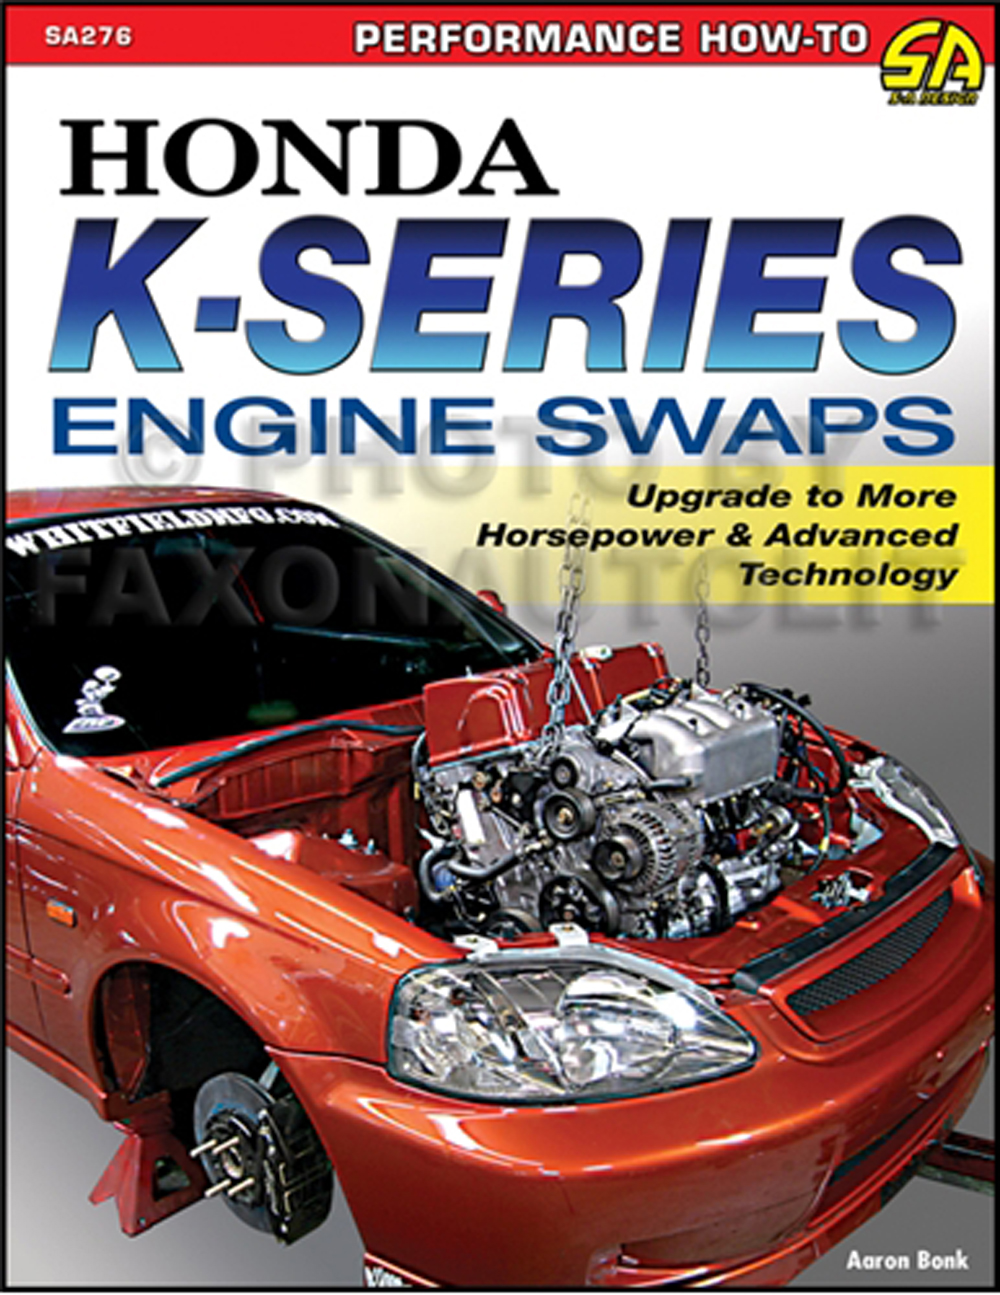 Honda K-Series Engine Swaps: How to Swap 2002-2013 Engines into 1988-2005 Cars